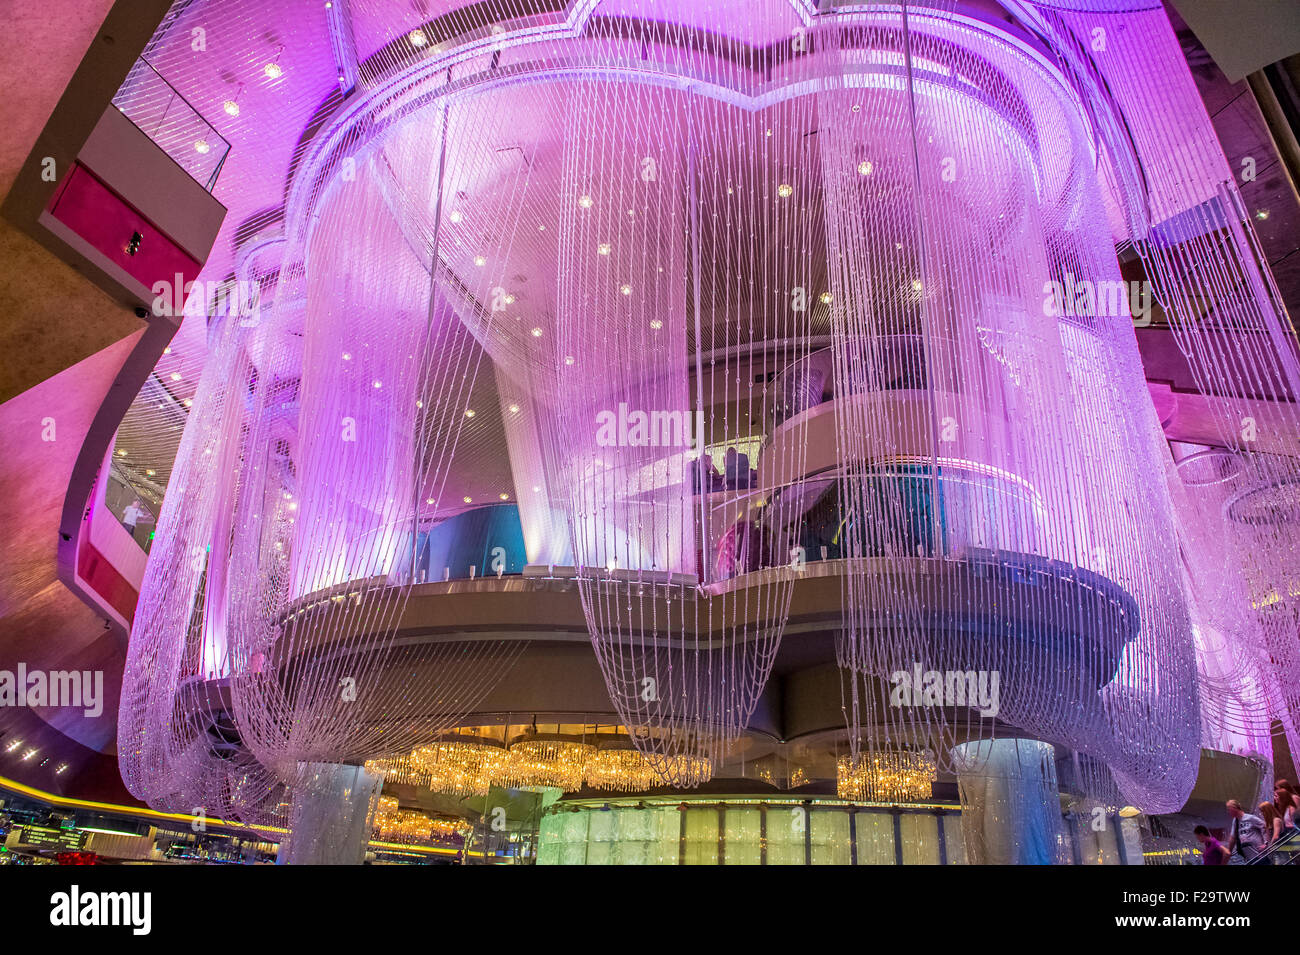 The chandelier bar at the cosmopolitan hotel casino in las vegas the chandelier bar at the cosmopolitan hotel casino in las vegas aloadofball